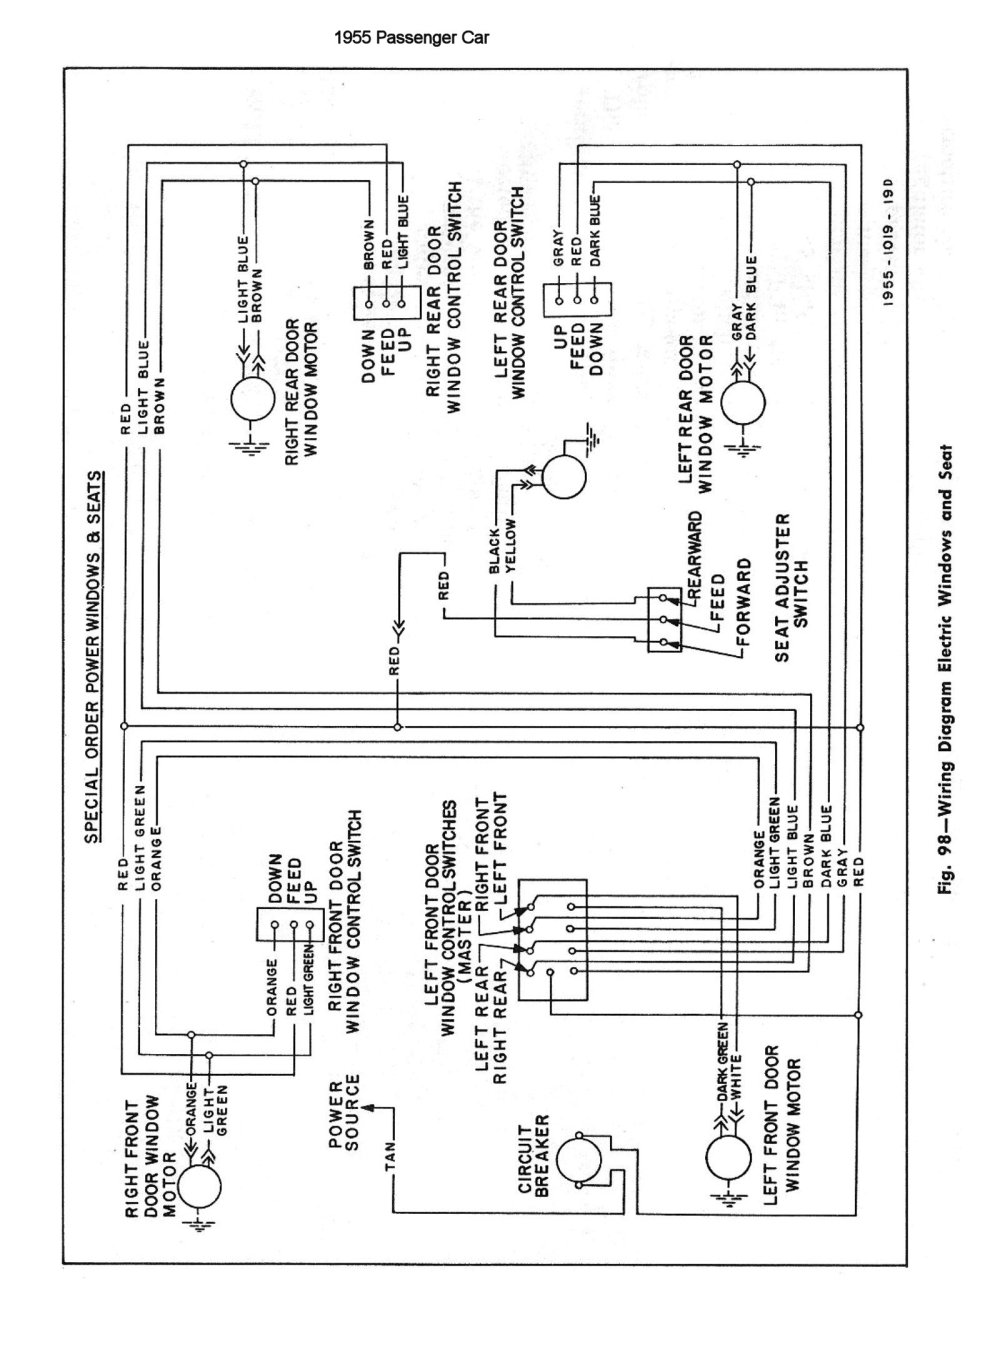 medium resolution of 1955 chevy truck wiring wiring diagram world 55 59 chevy truck wiring harness 55 chevy